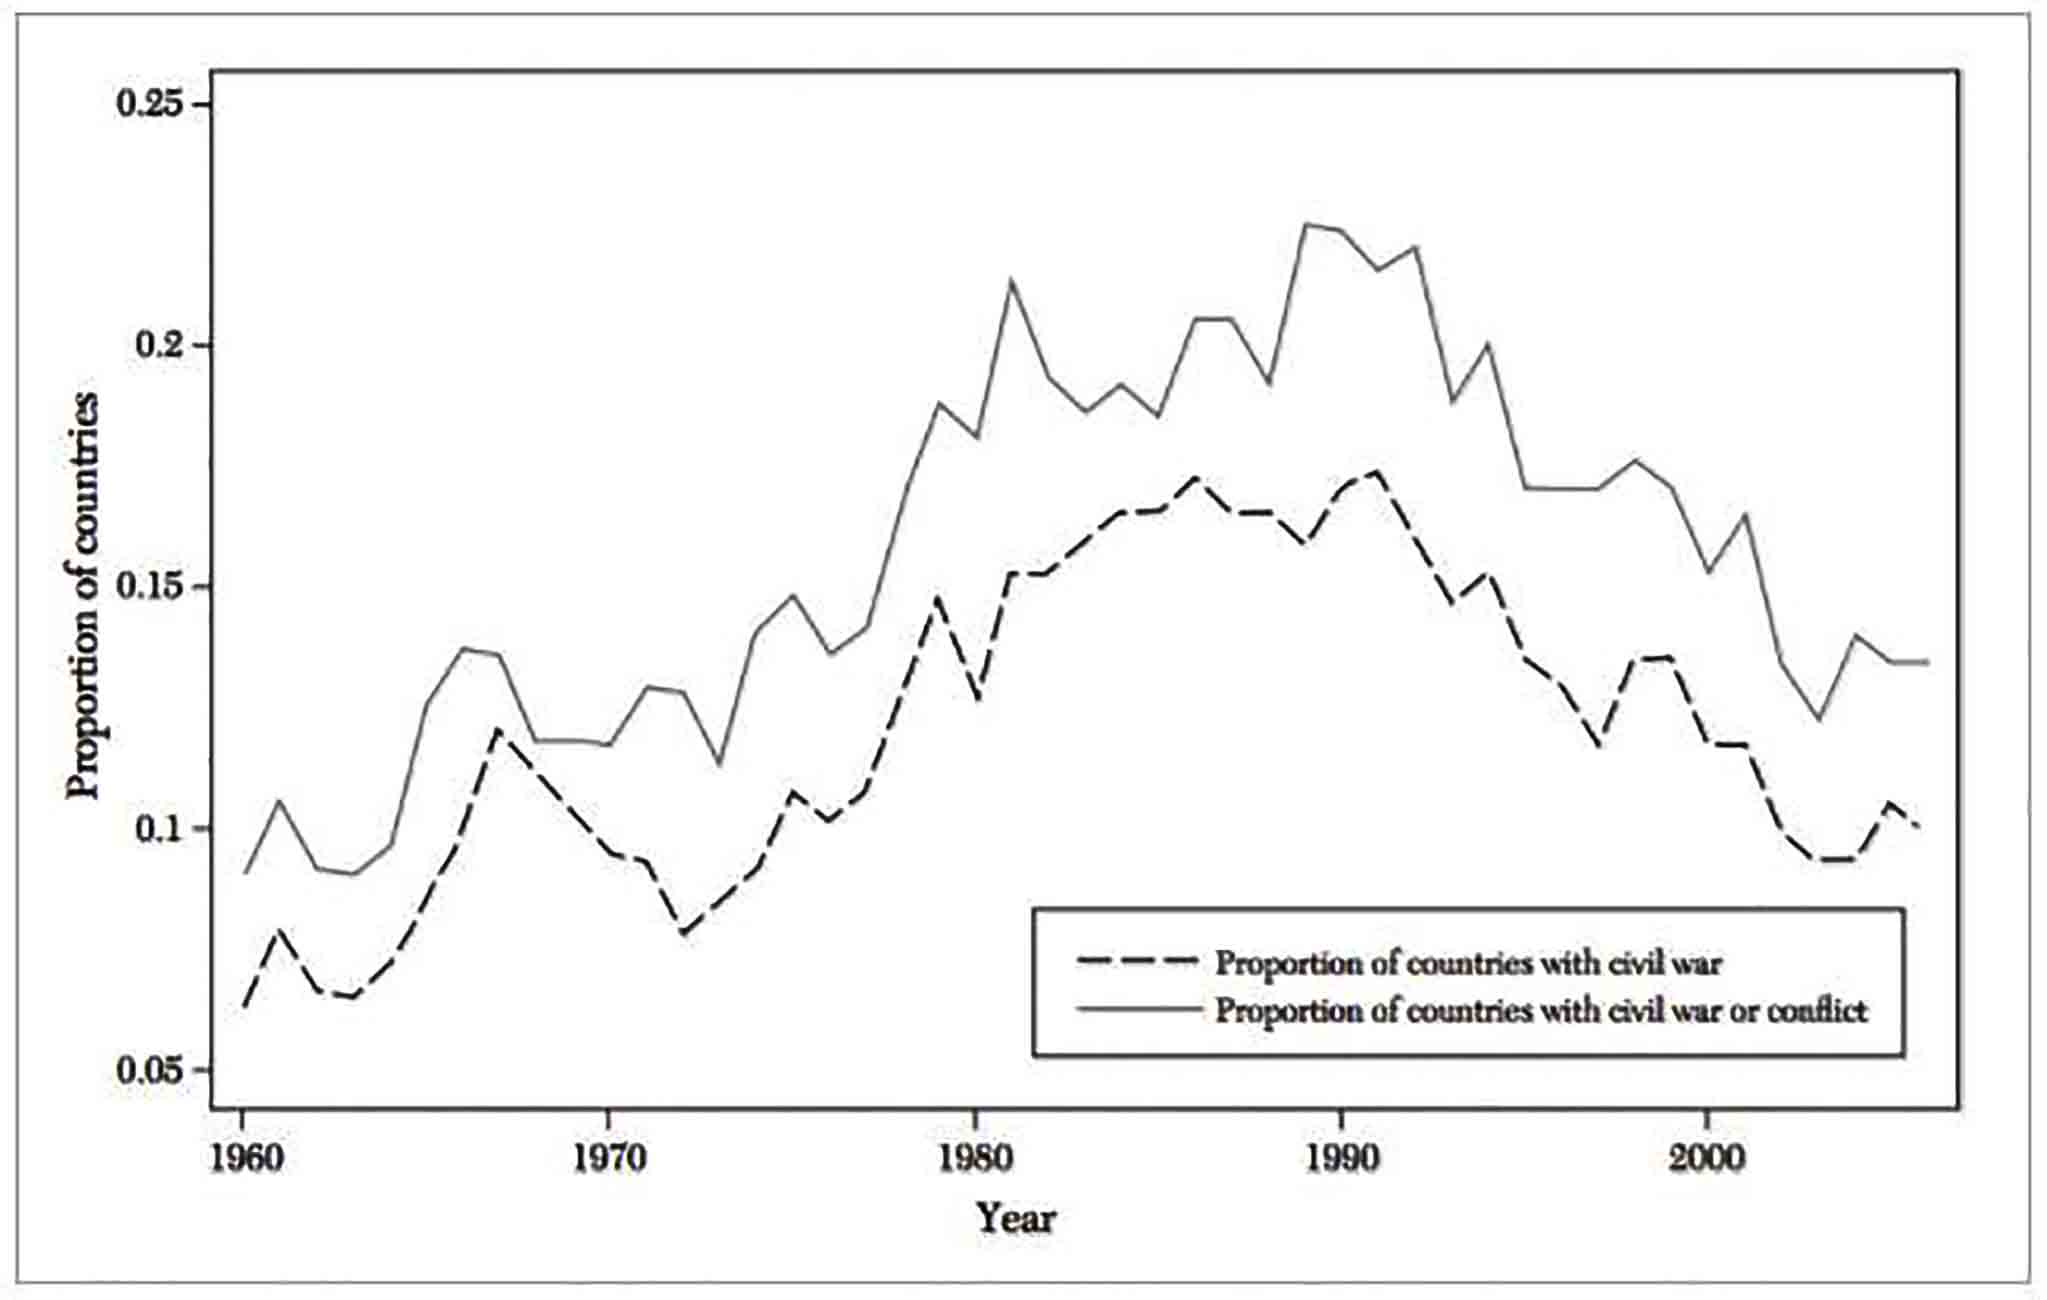 Proportion of countries with an active civil war or civil conflict, 1960-2006